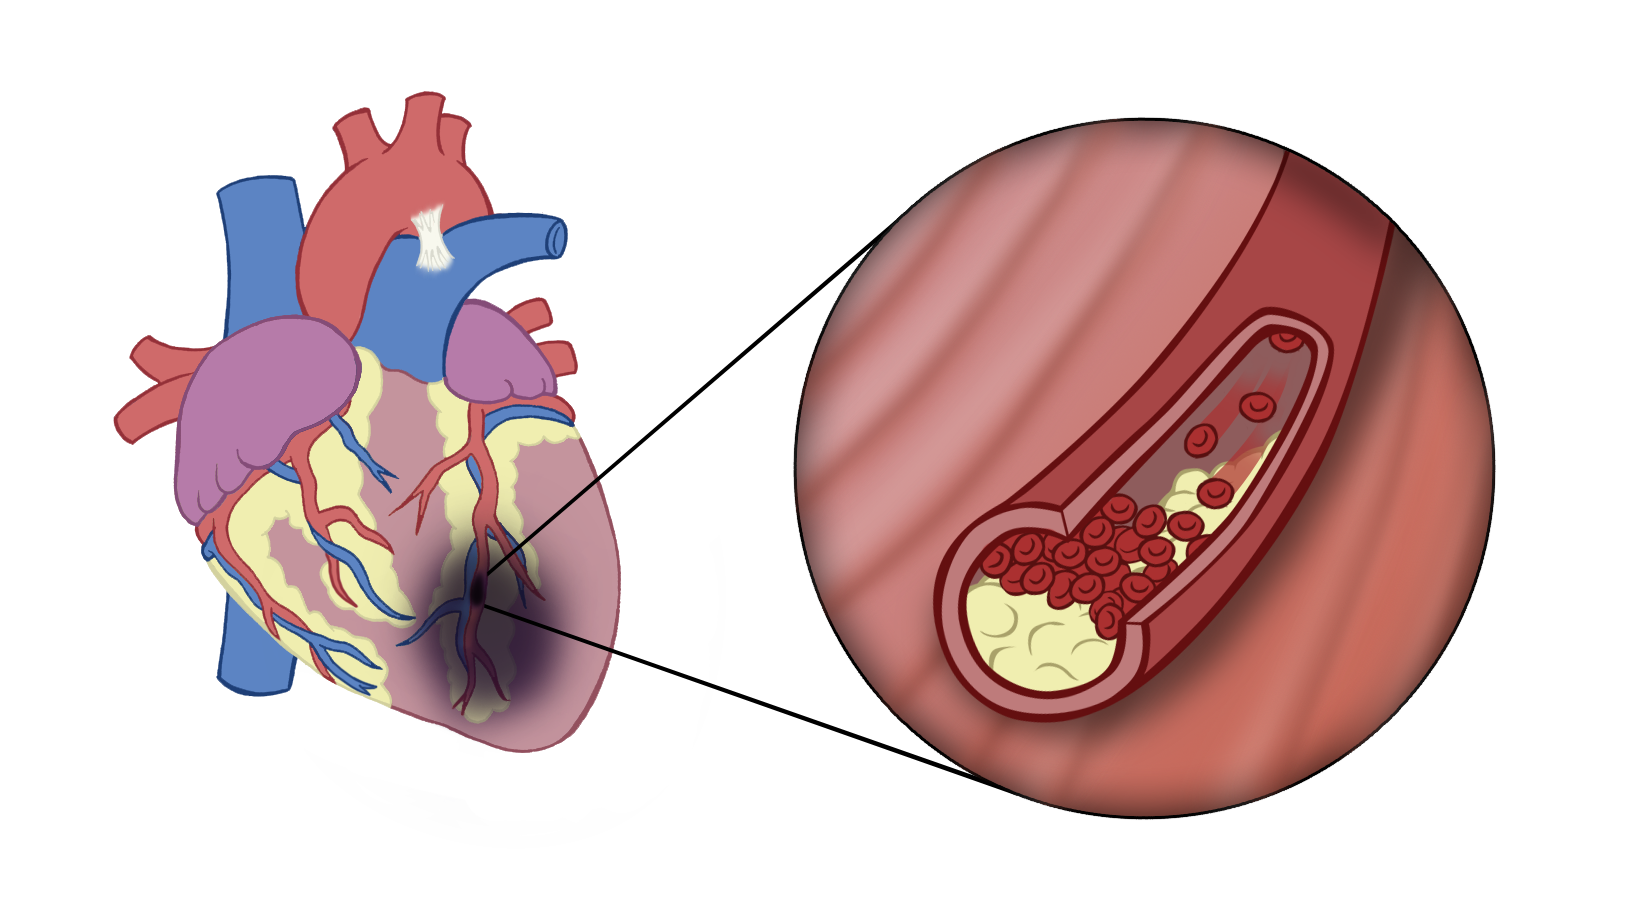 Plaque build up in the blood vessels of the heart